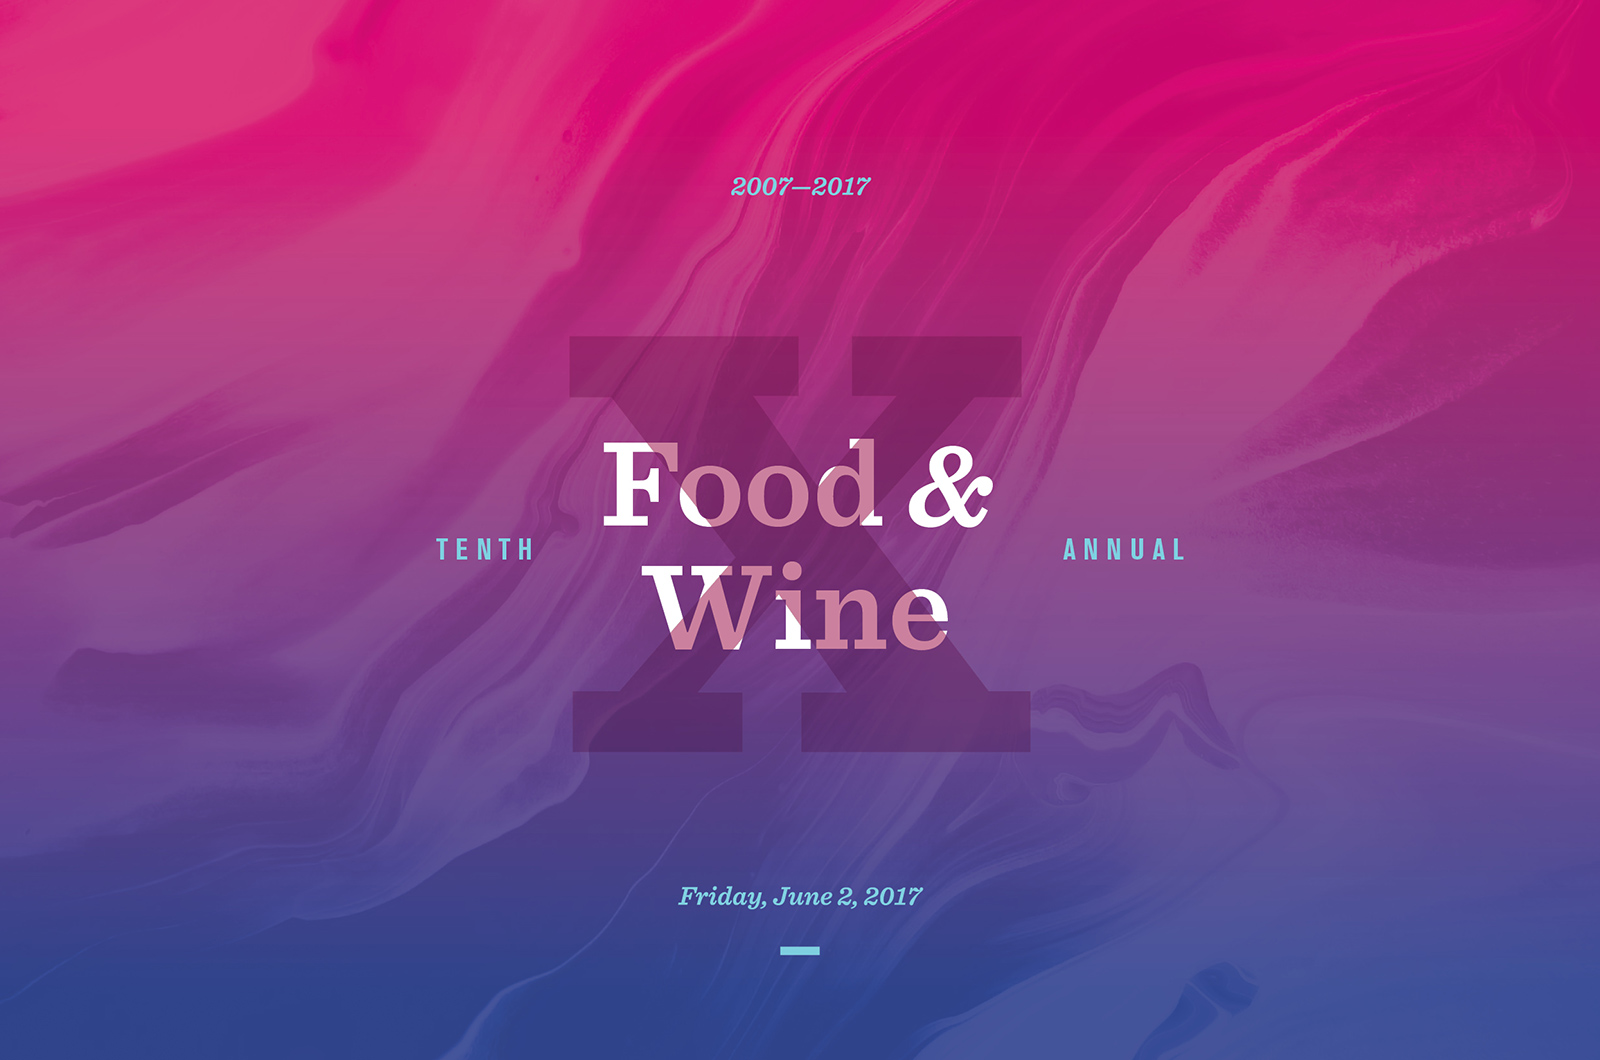 Food & Wine Gala Image